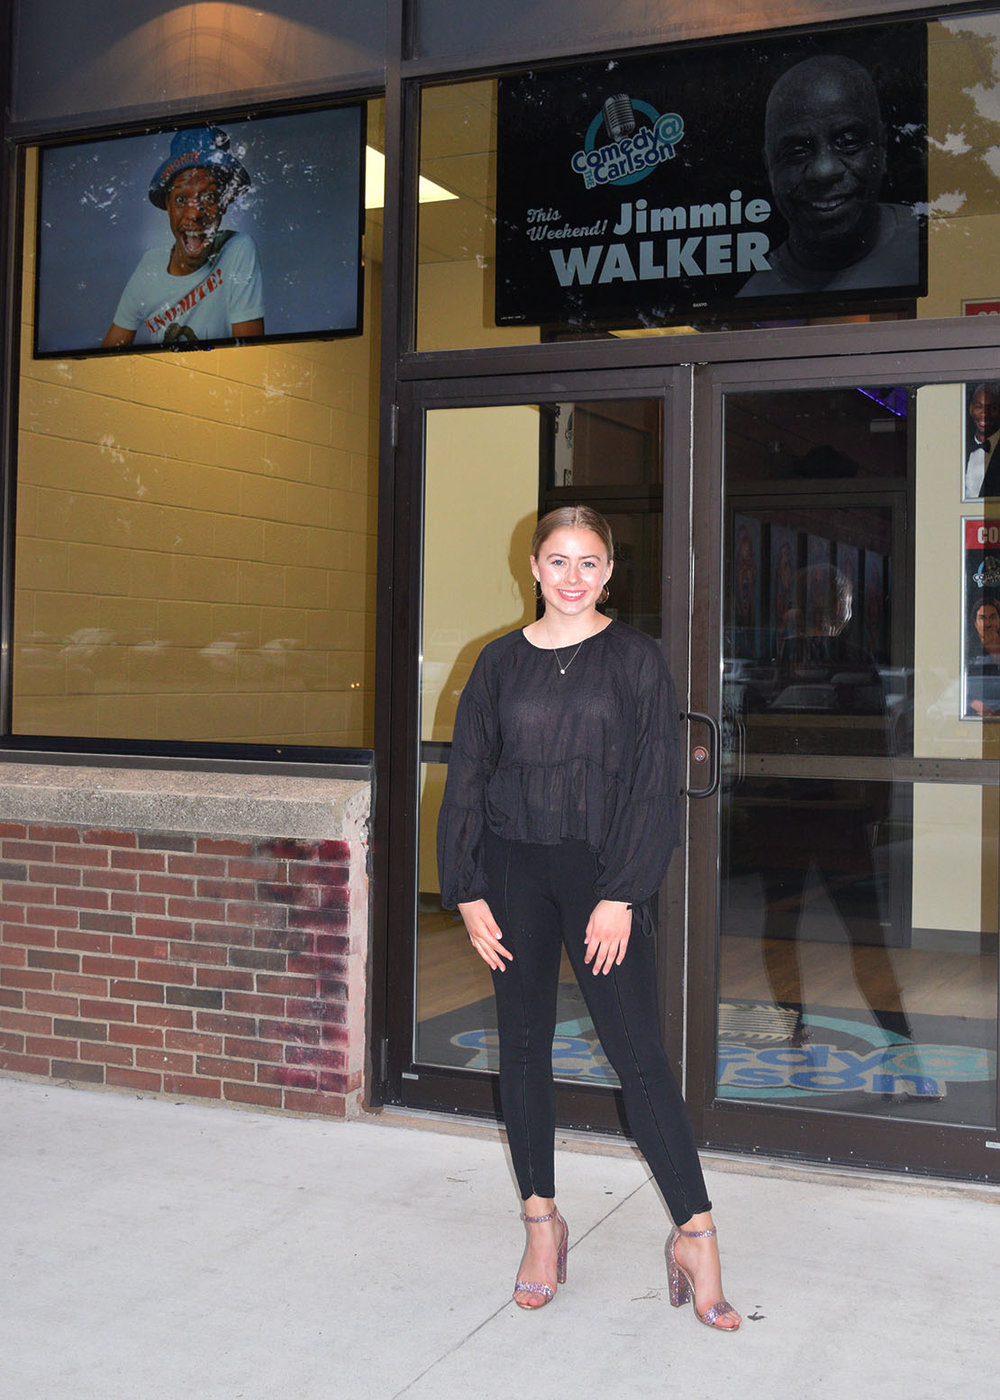 Alia opened for 70s' sitcom star Jimmie Walker in August 2018.